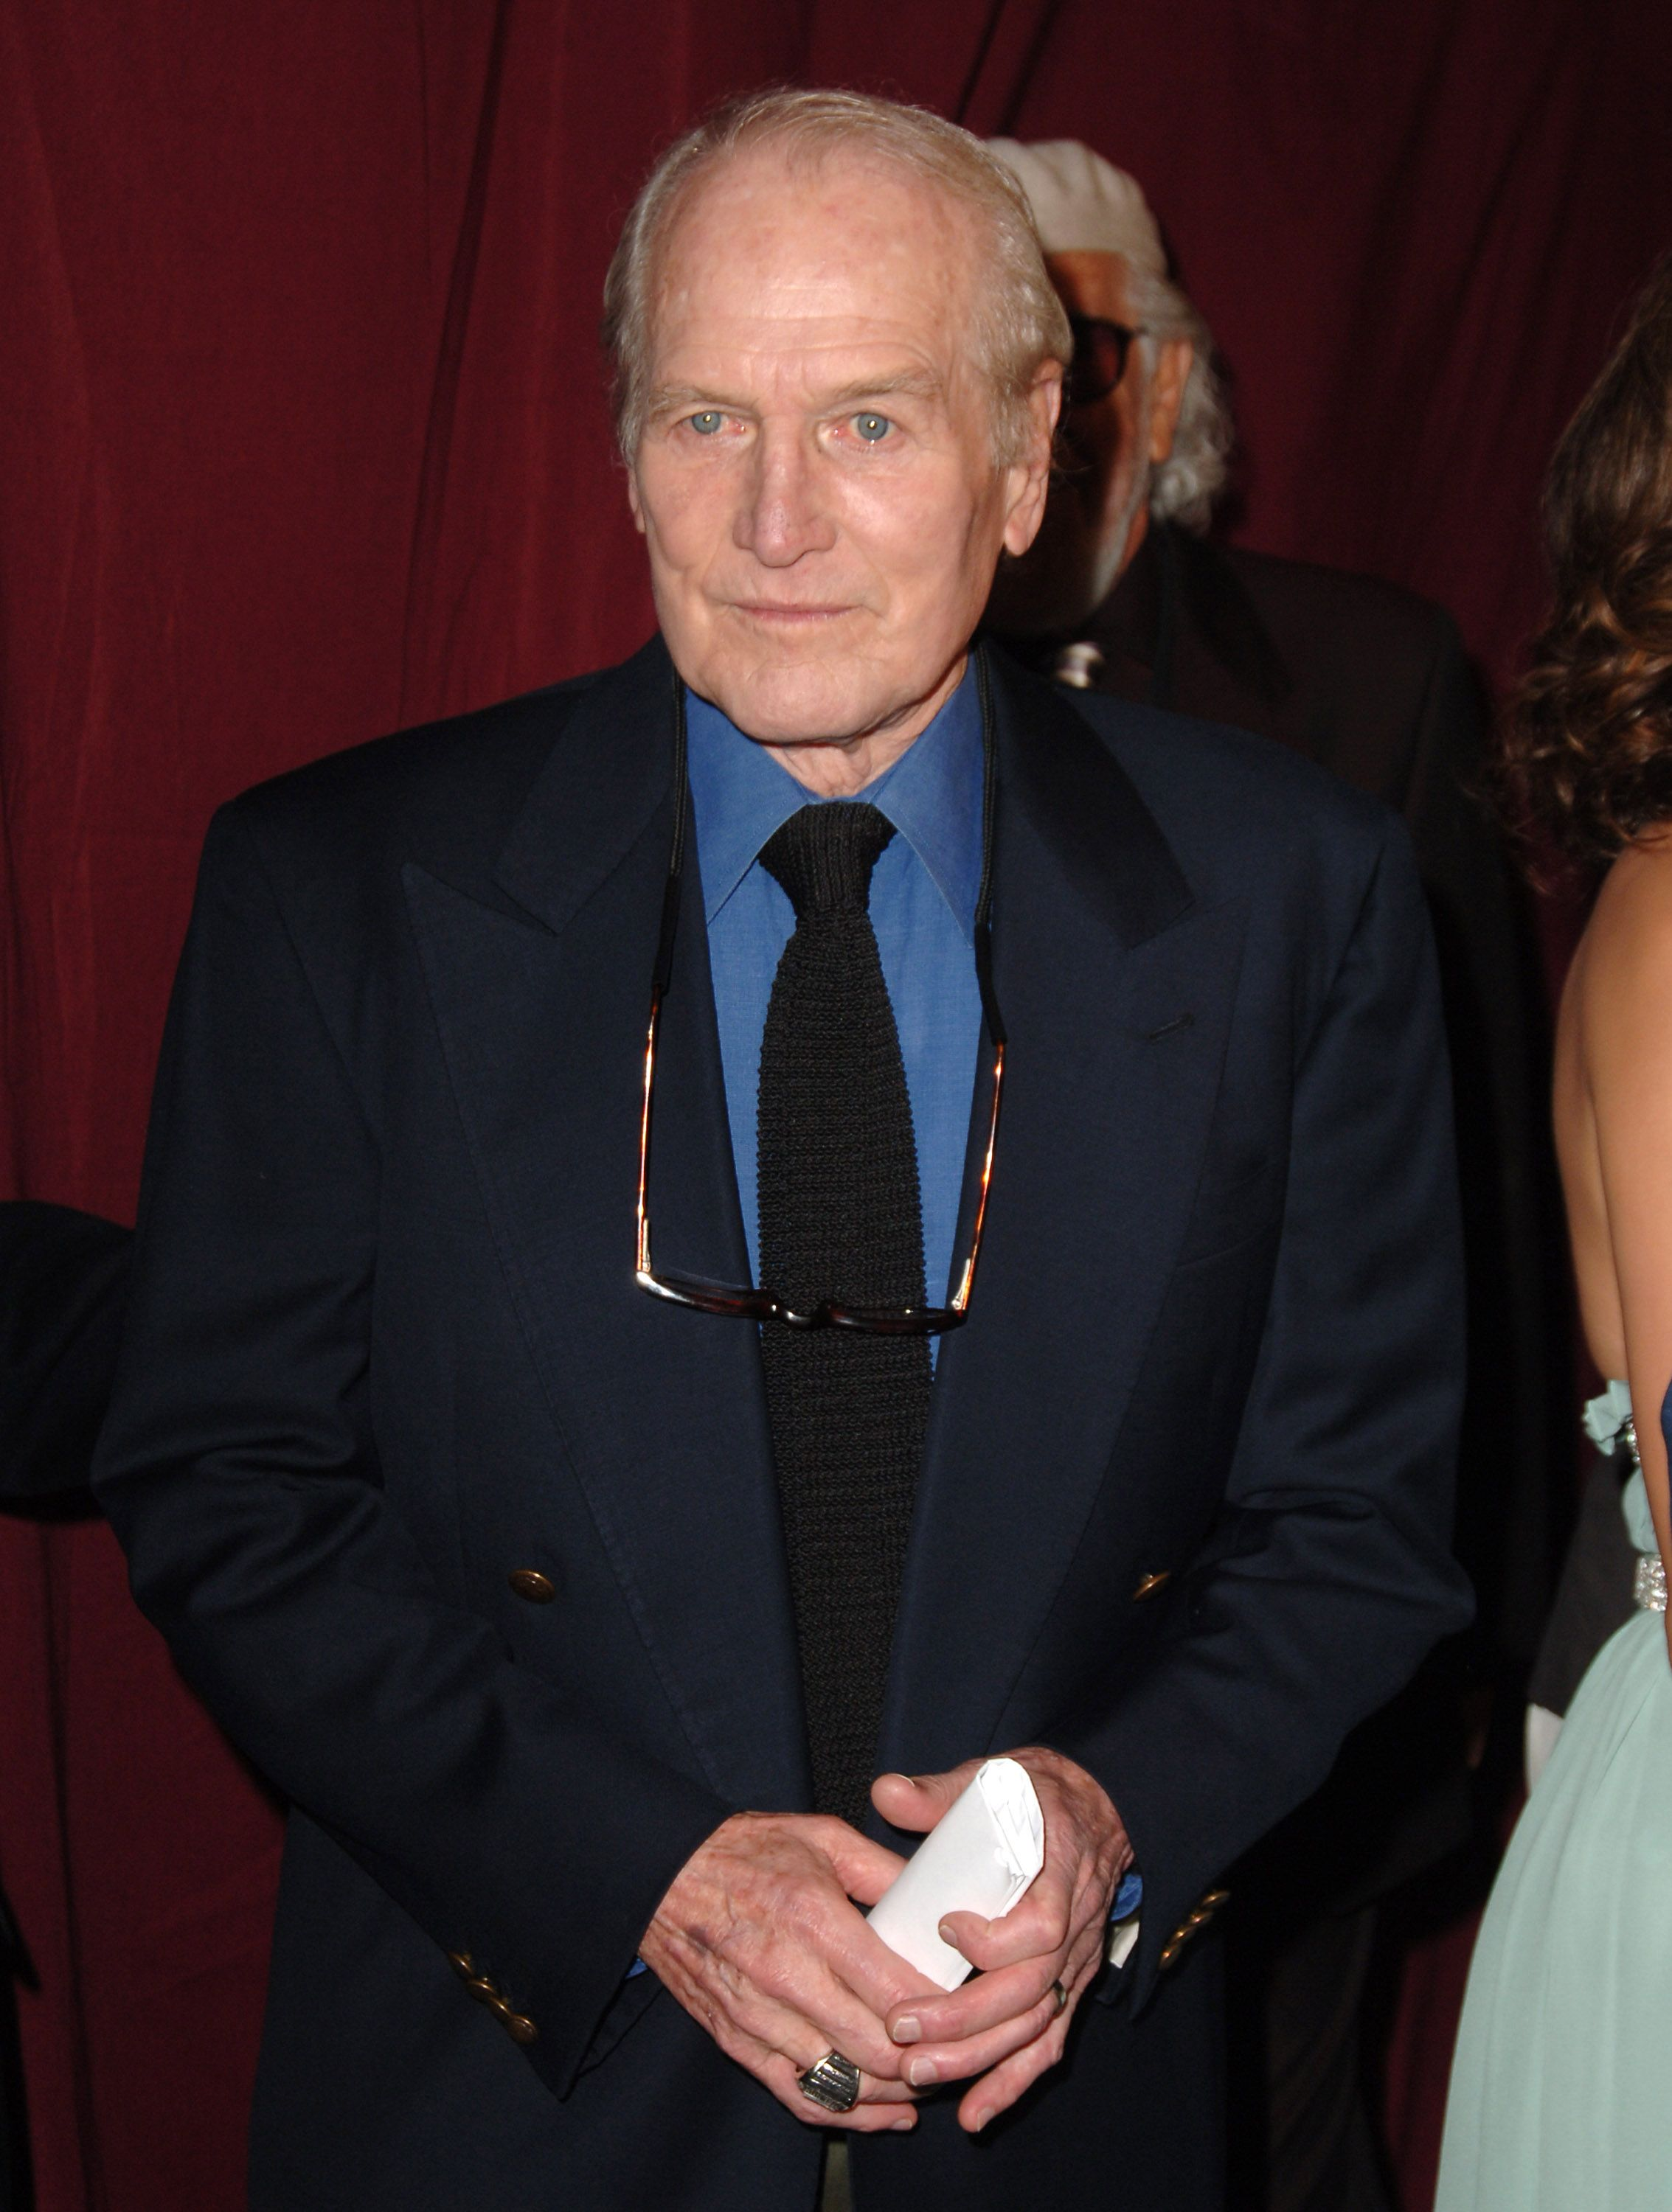 Paul Newman at the Kodak Theatre in Hollywood in 2006 | Photo: Getty Images